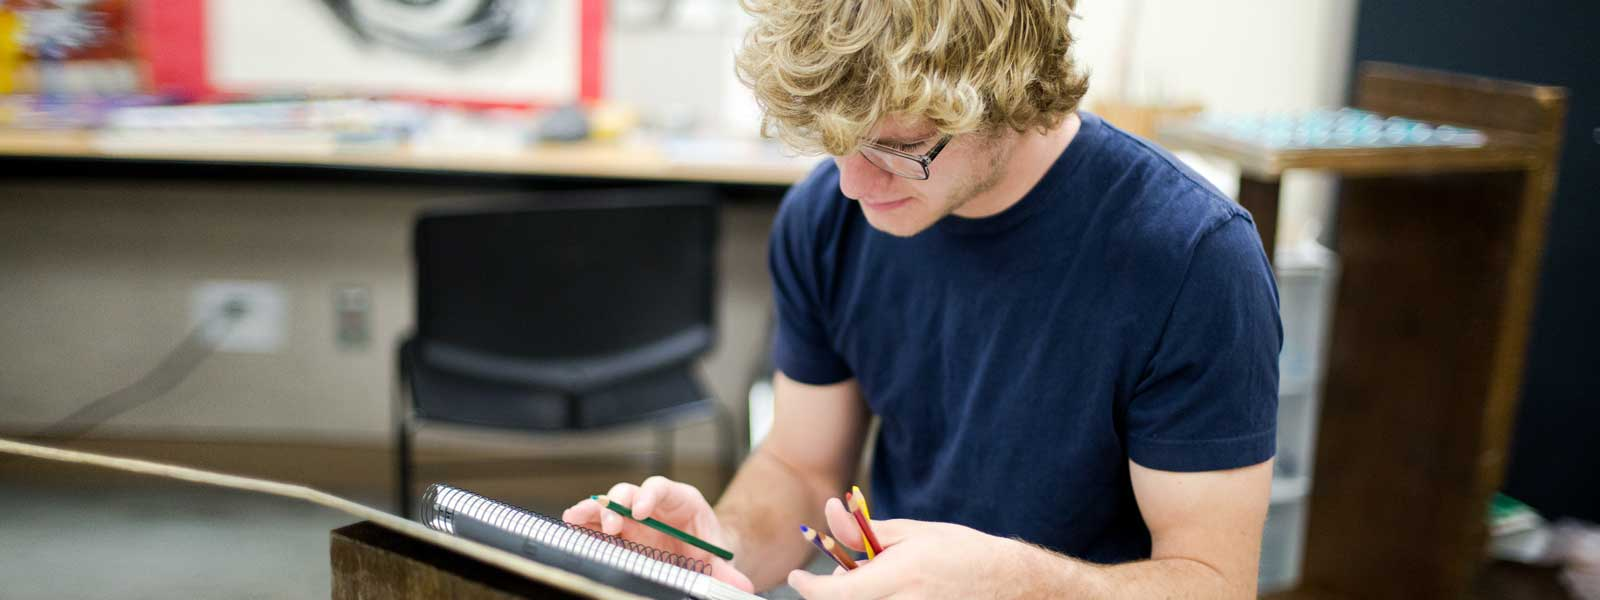 art student works on drawing project